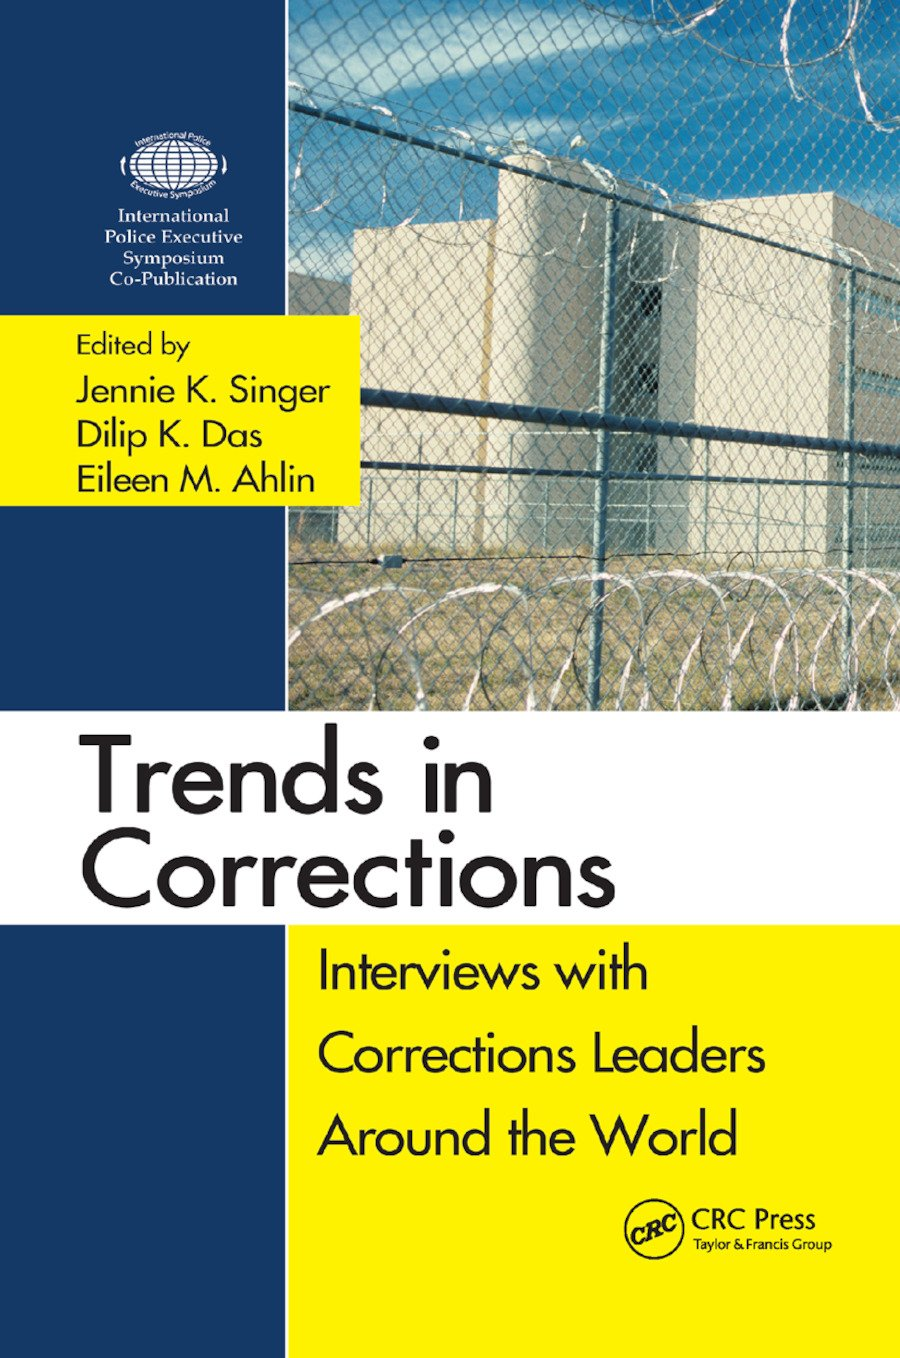 Trends in Corrections: Interviews with Corrections Leaders Around the World, Volume One book cover